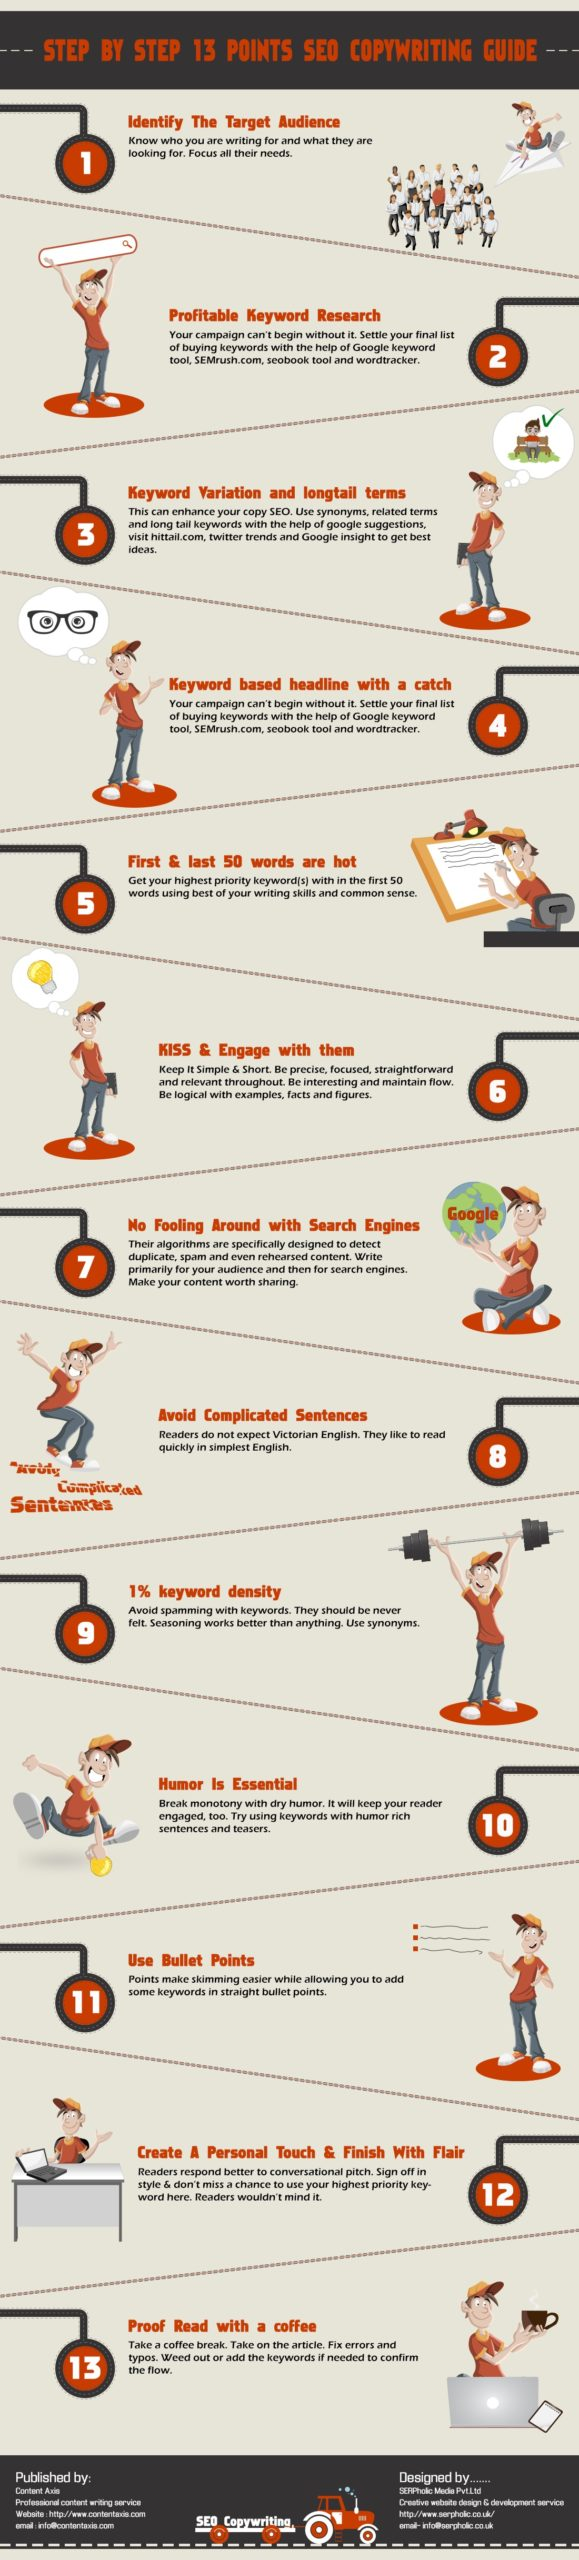 Step by Step 13 Points SEO Copywriting Guide1